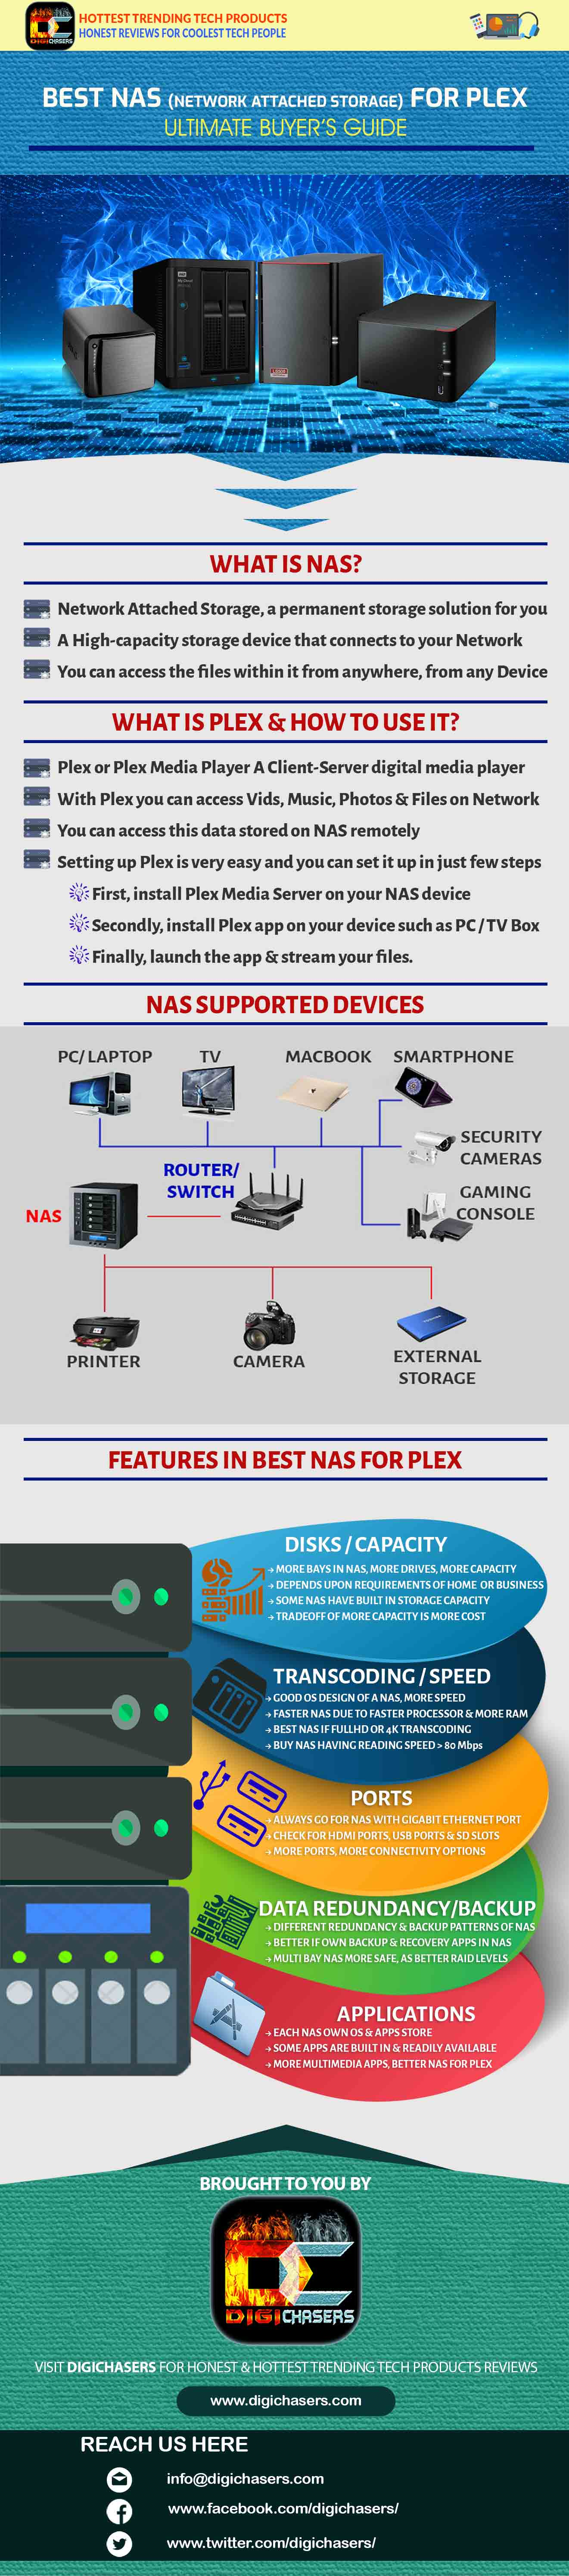 12 BEST NAS FOR PLEX 2019 - Reviews & Buyers Guide